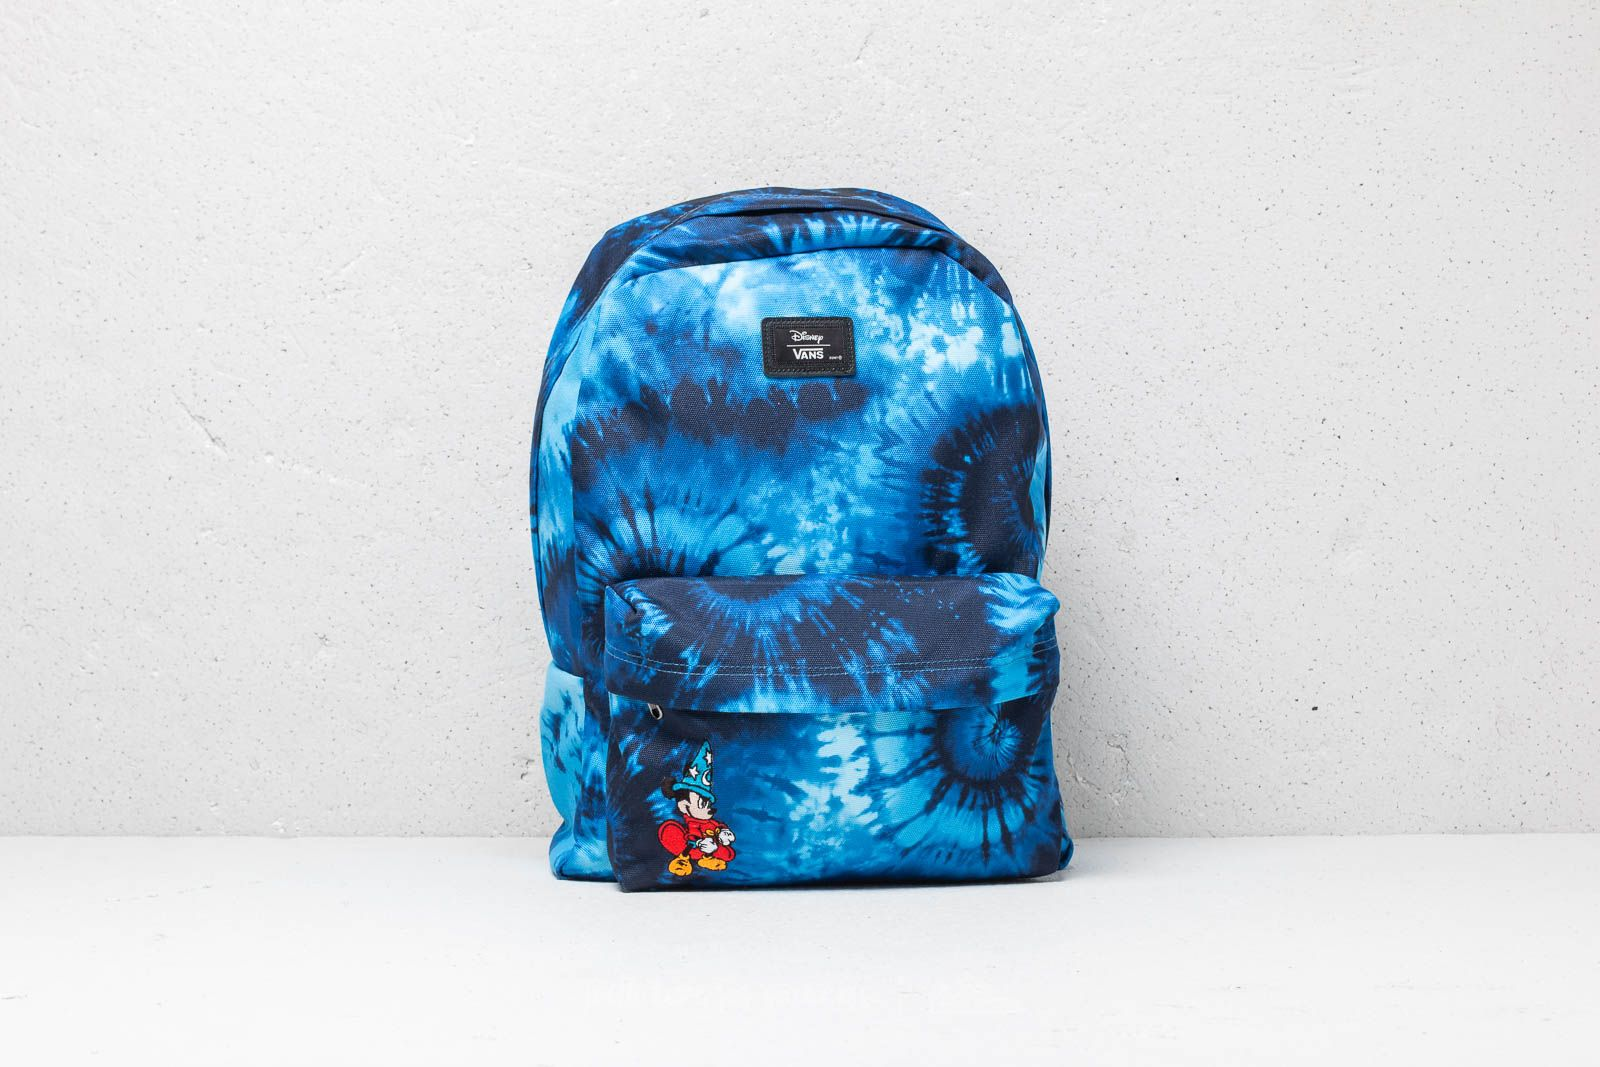 Vans x Disney Mickey Mouse Old Skool II Backpack Blue  c9966cf804c8a